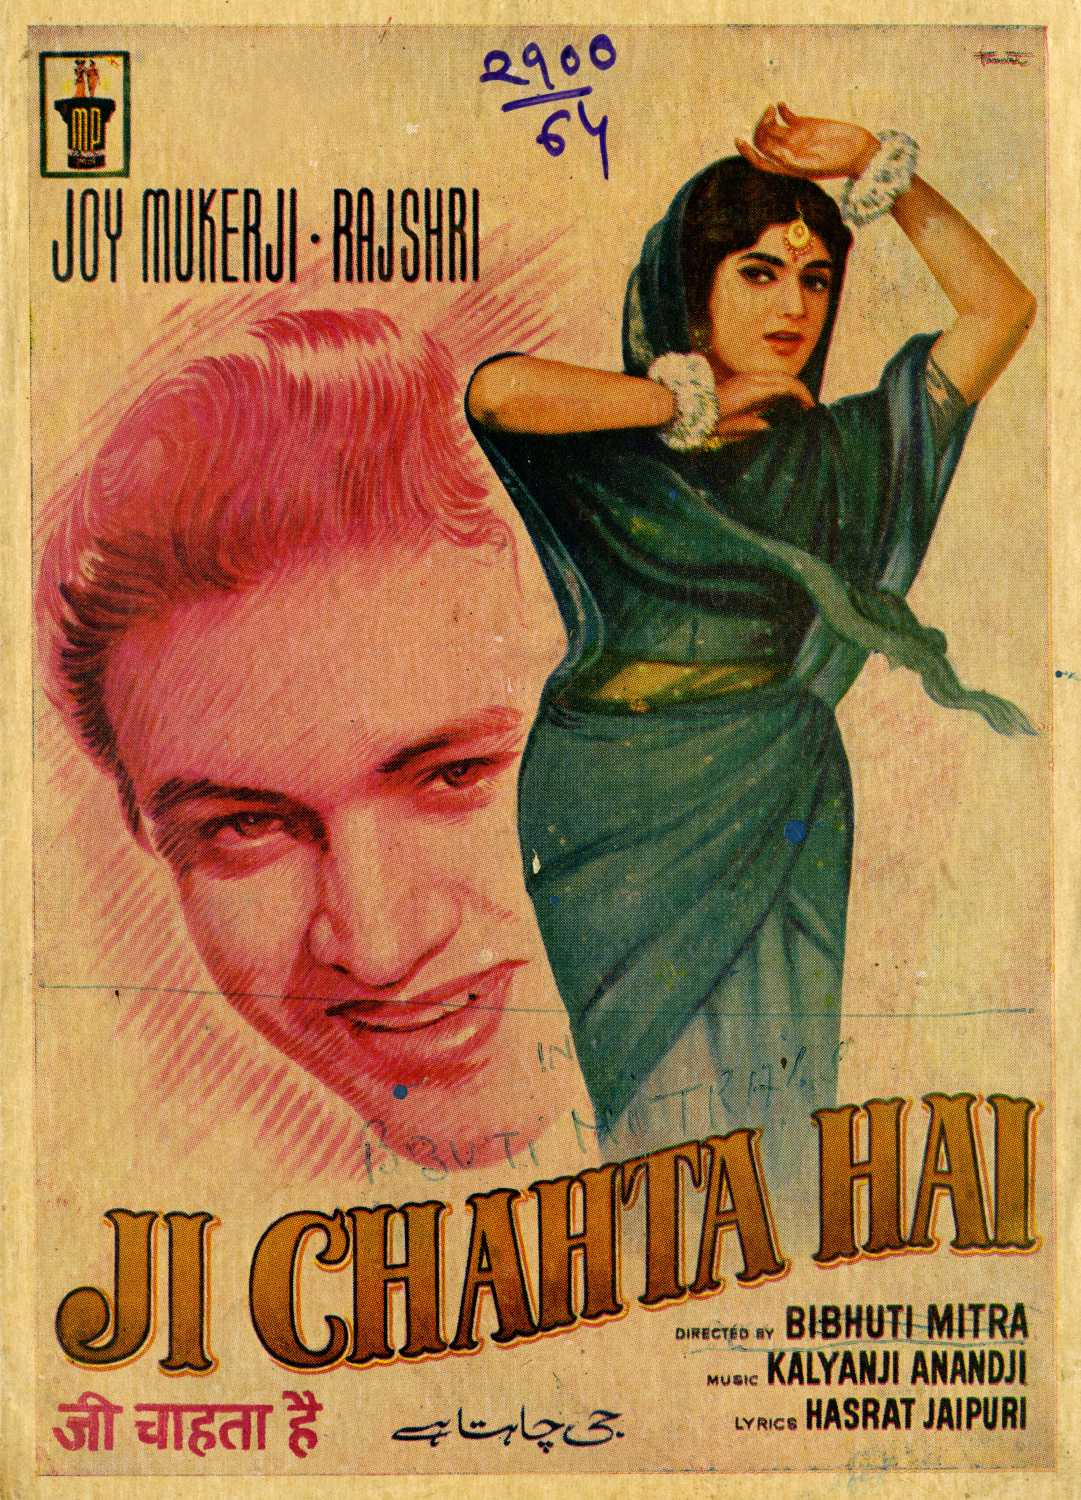 Ji Chahta Hai Movie Poster